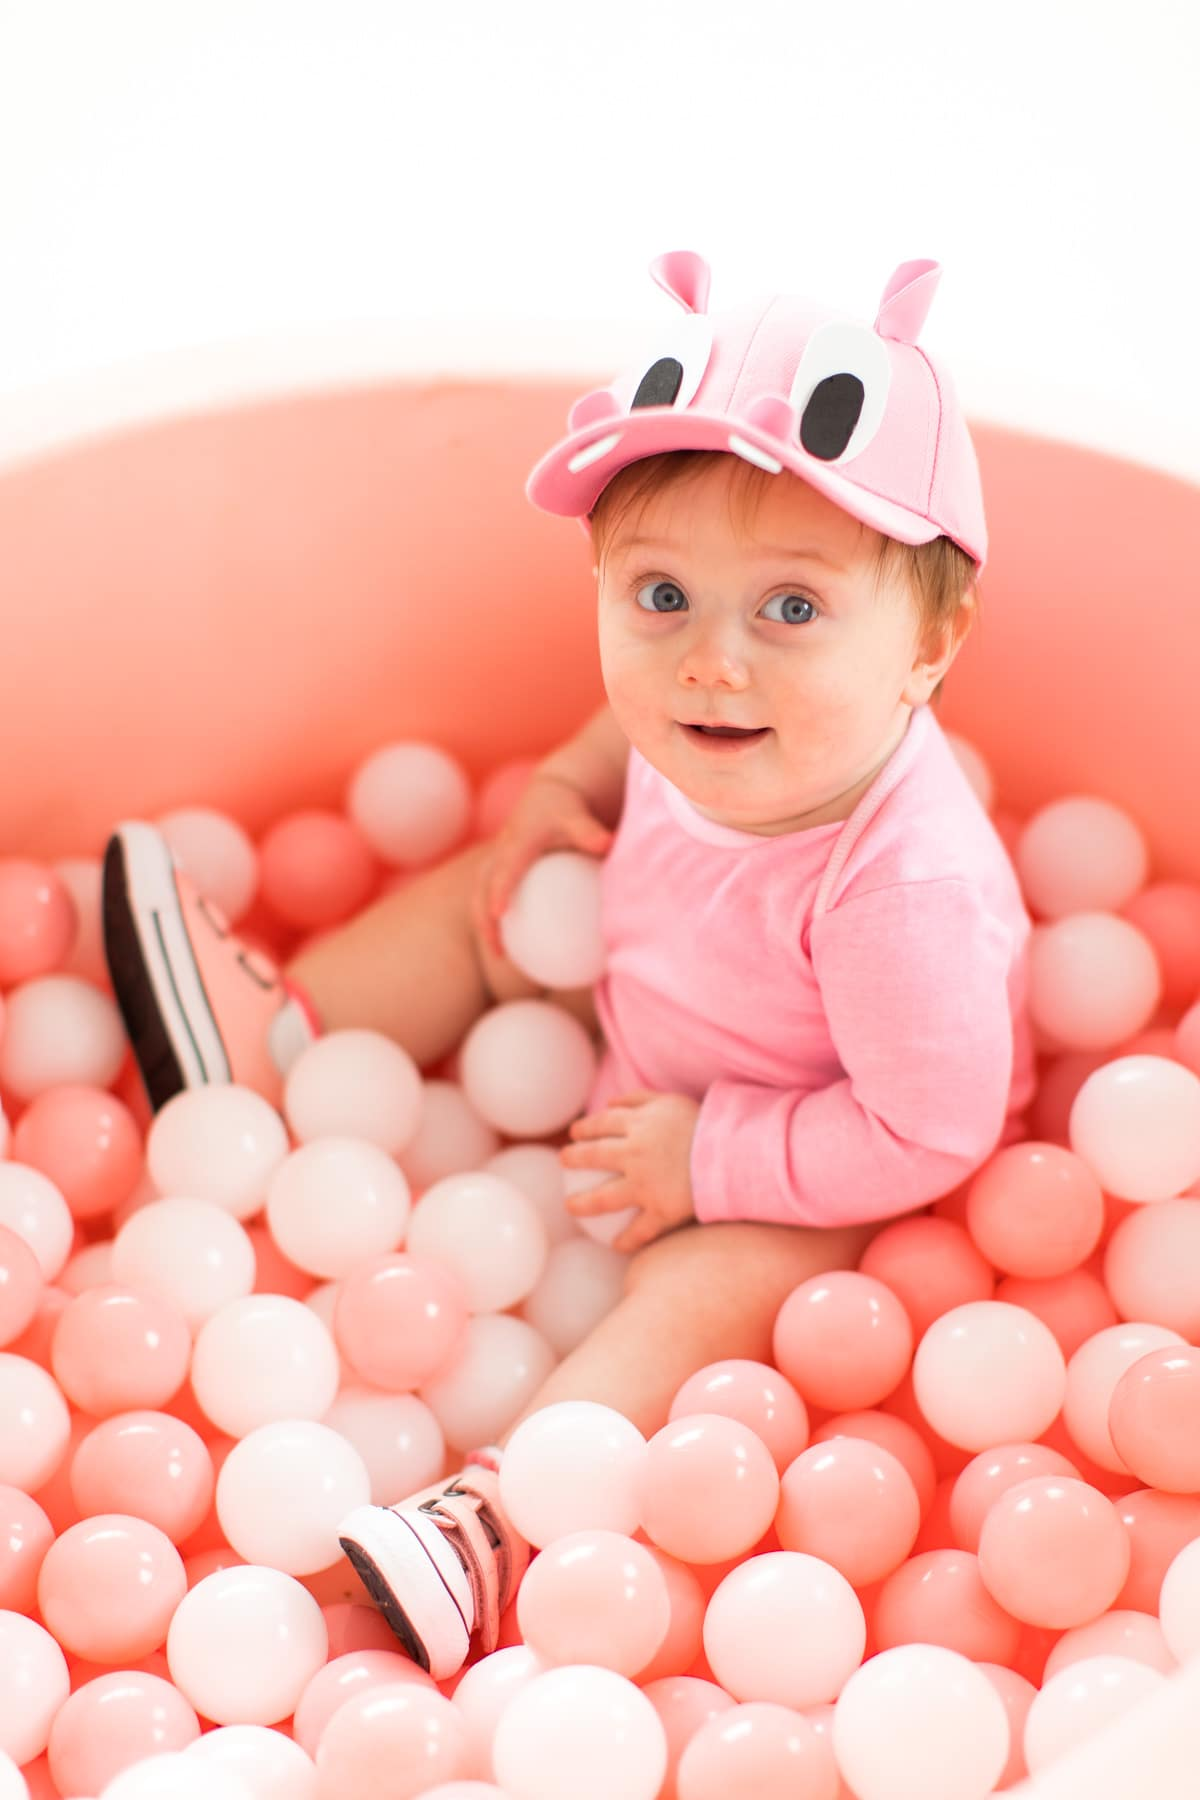 Gwen in her cute pink felt ball pit! -- loading up the crazy amount of baby gear! Our Family DIY Hungry Hippos Costume Idea -- by Top Houston blogger Ashley Rose of Sugar and Cloth -- #costumes #halloween #ideas #family #familycostume #diy